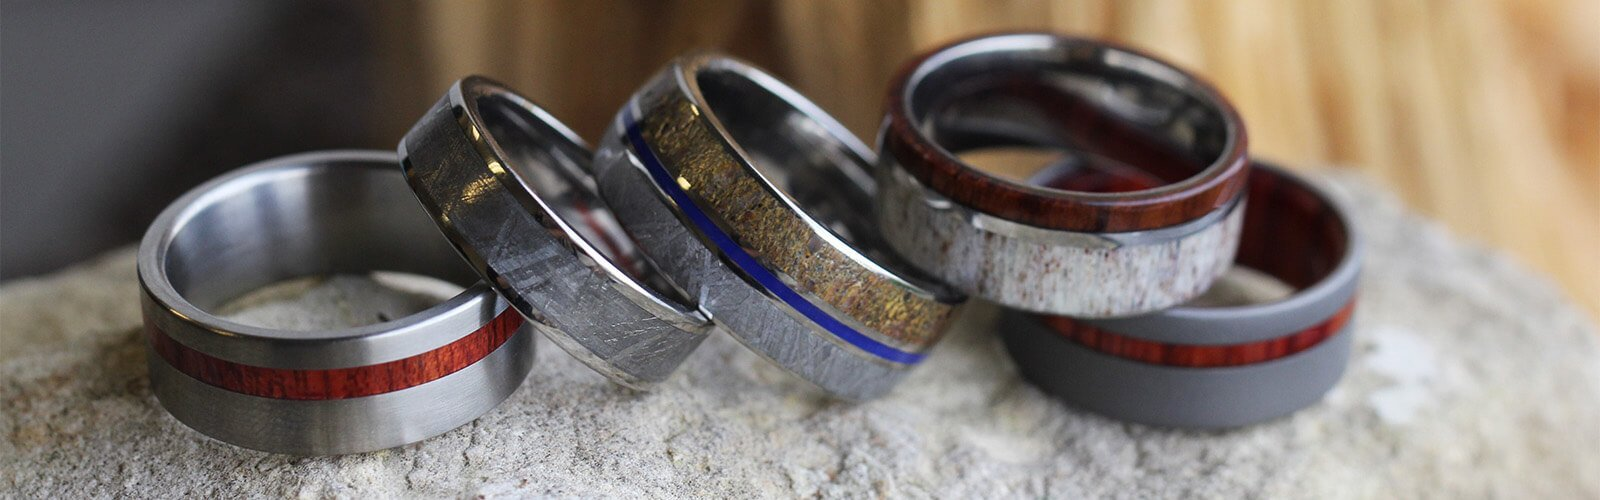 rings stainless bentwood products ring afzelia grade rare steel fit burl with comfort wood metal exotic wedding surgical core